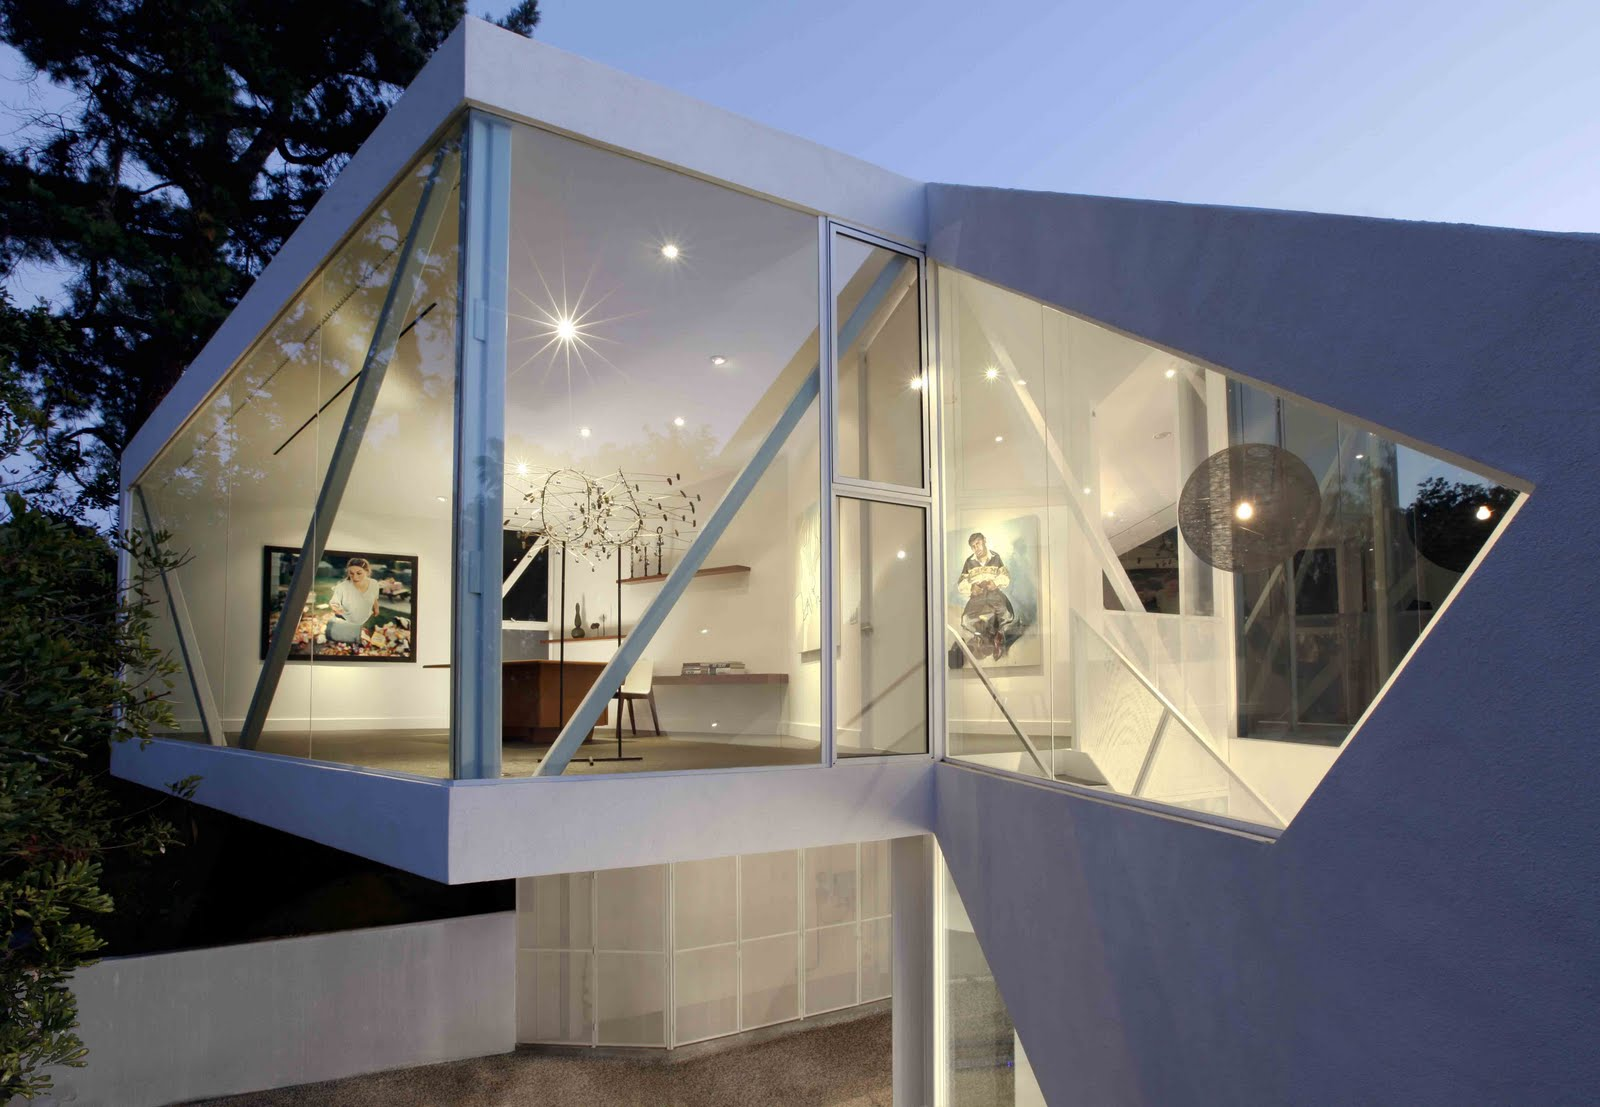 Galer a de arte en una residencia privada por xten for Arquitectura and design